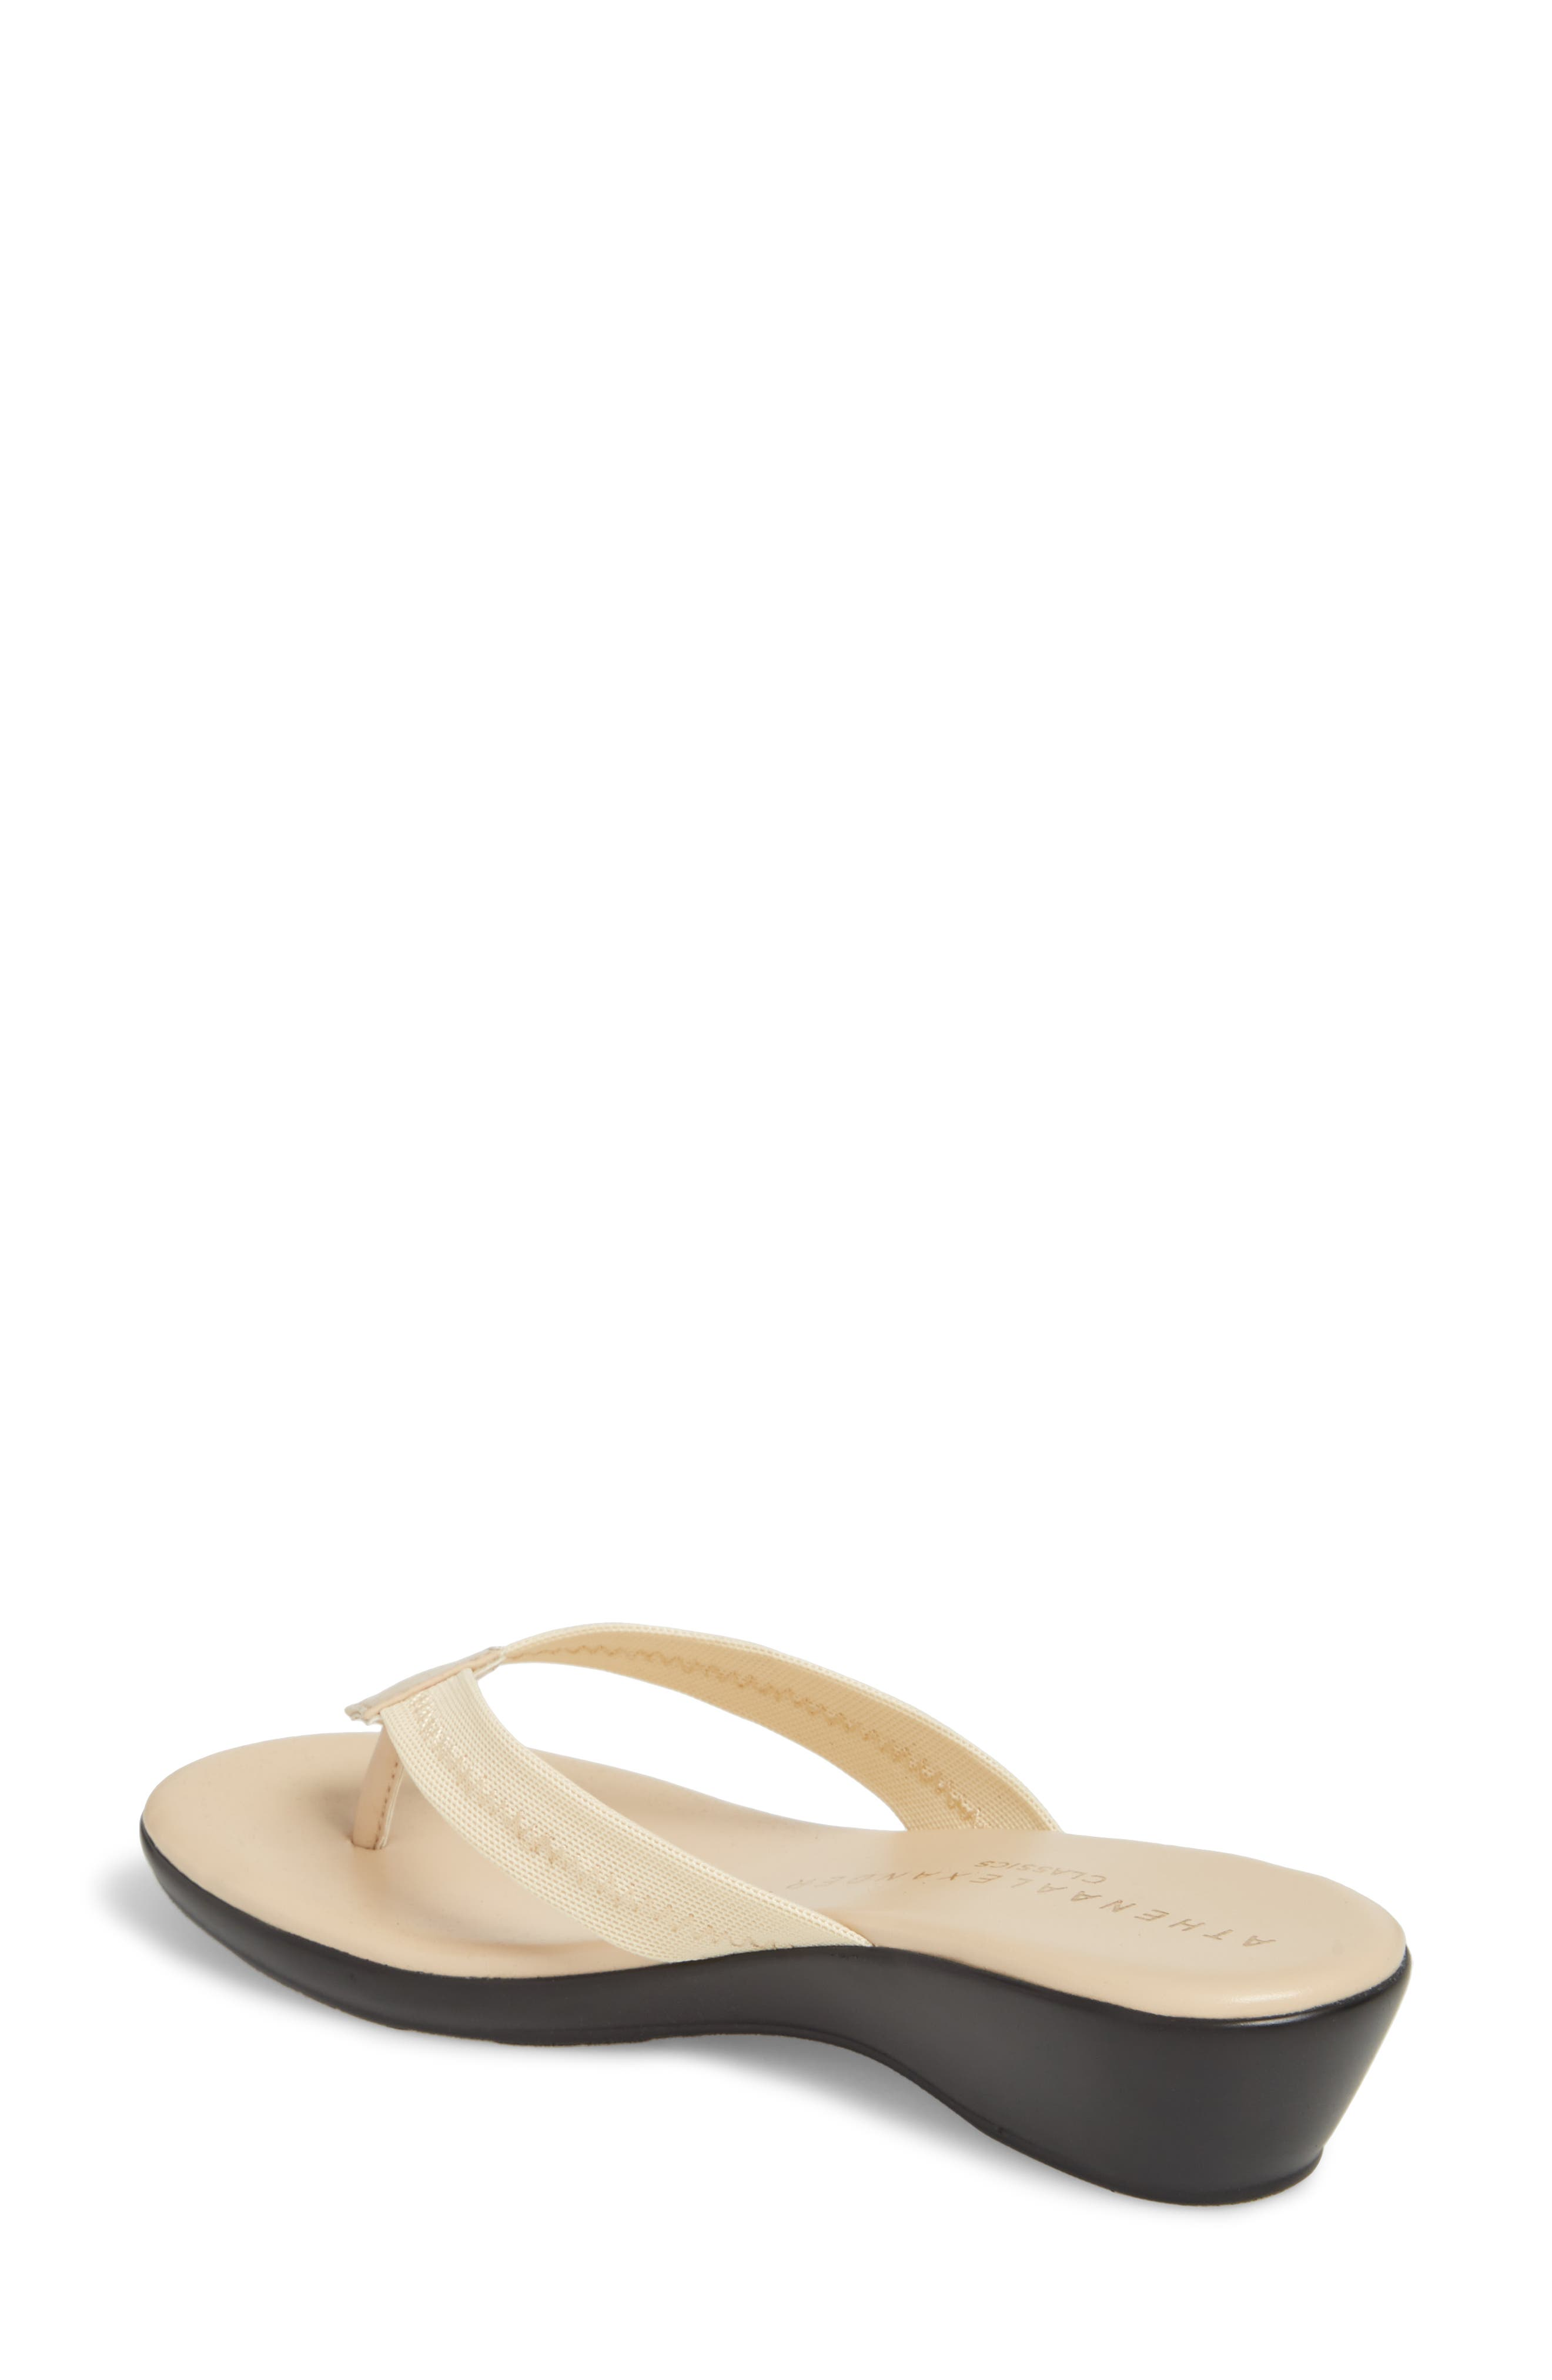 Ying Flip Flop,                             Alternate thumbnail 2, color,                             BEIGE STRETCH FABRIC